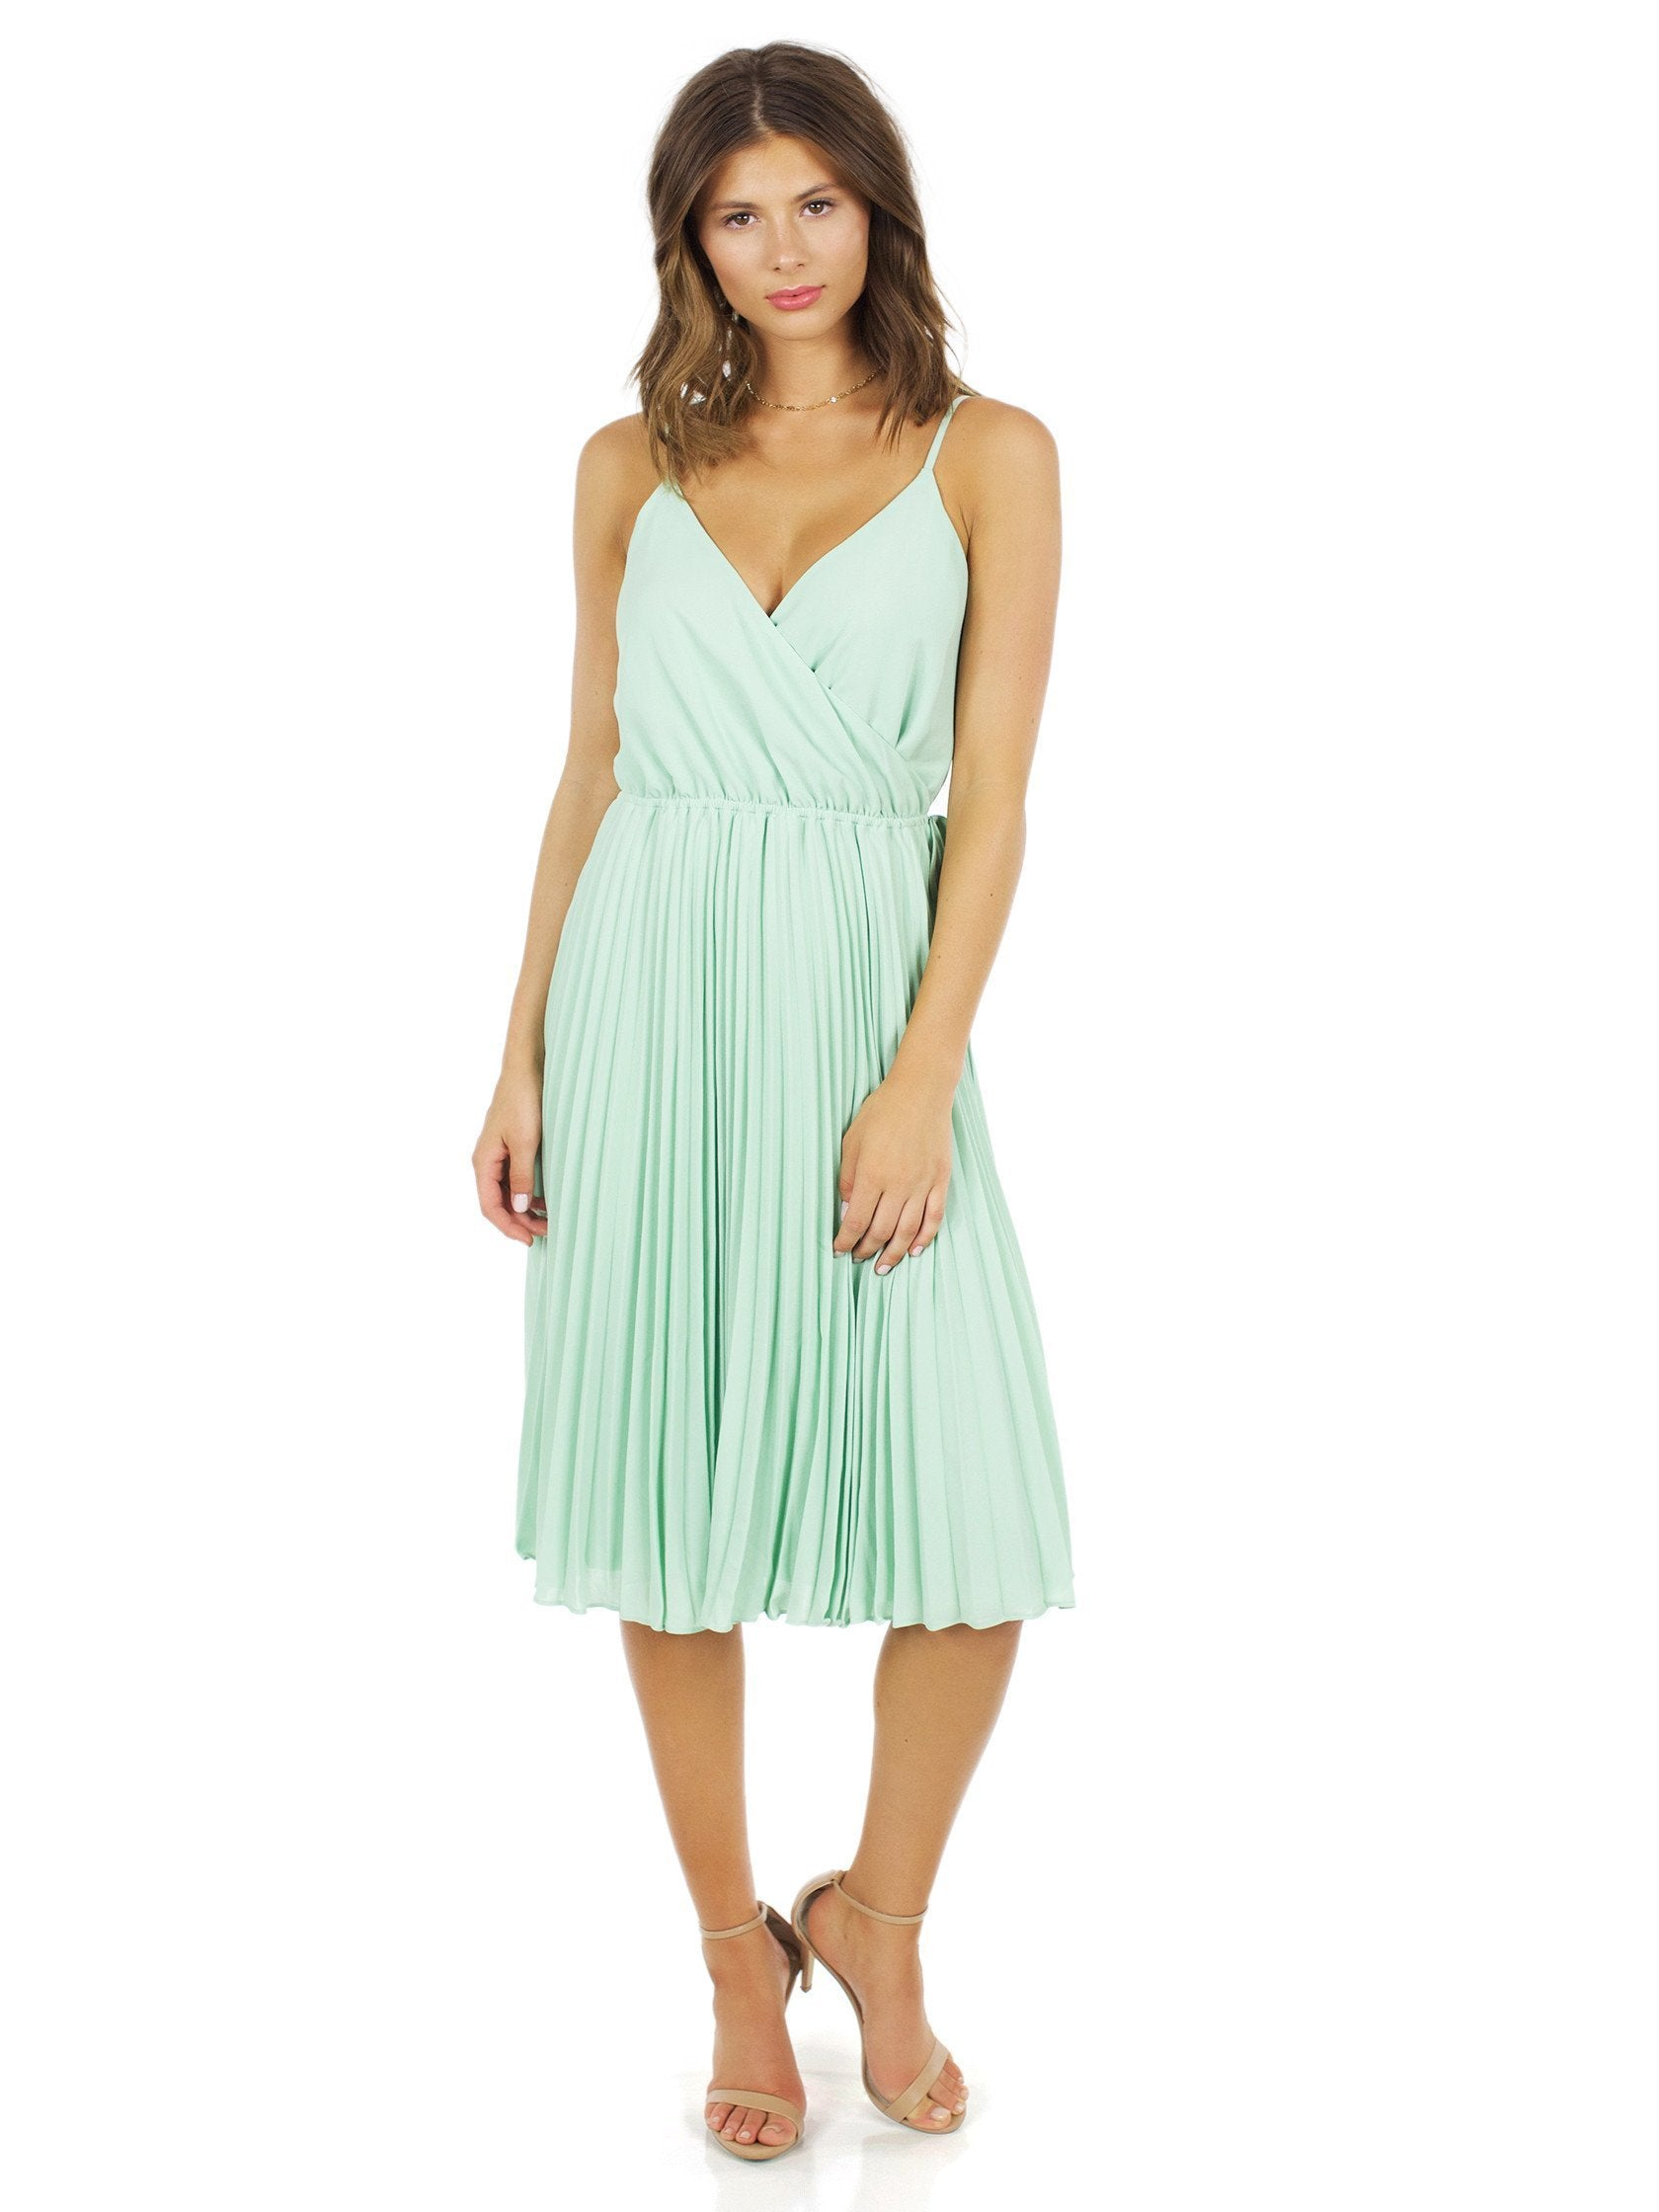 Woman wearing a dress rental from Ali & Jay called Lily Pond Fit & Flare Dress